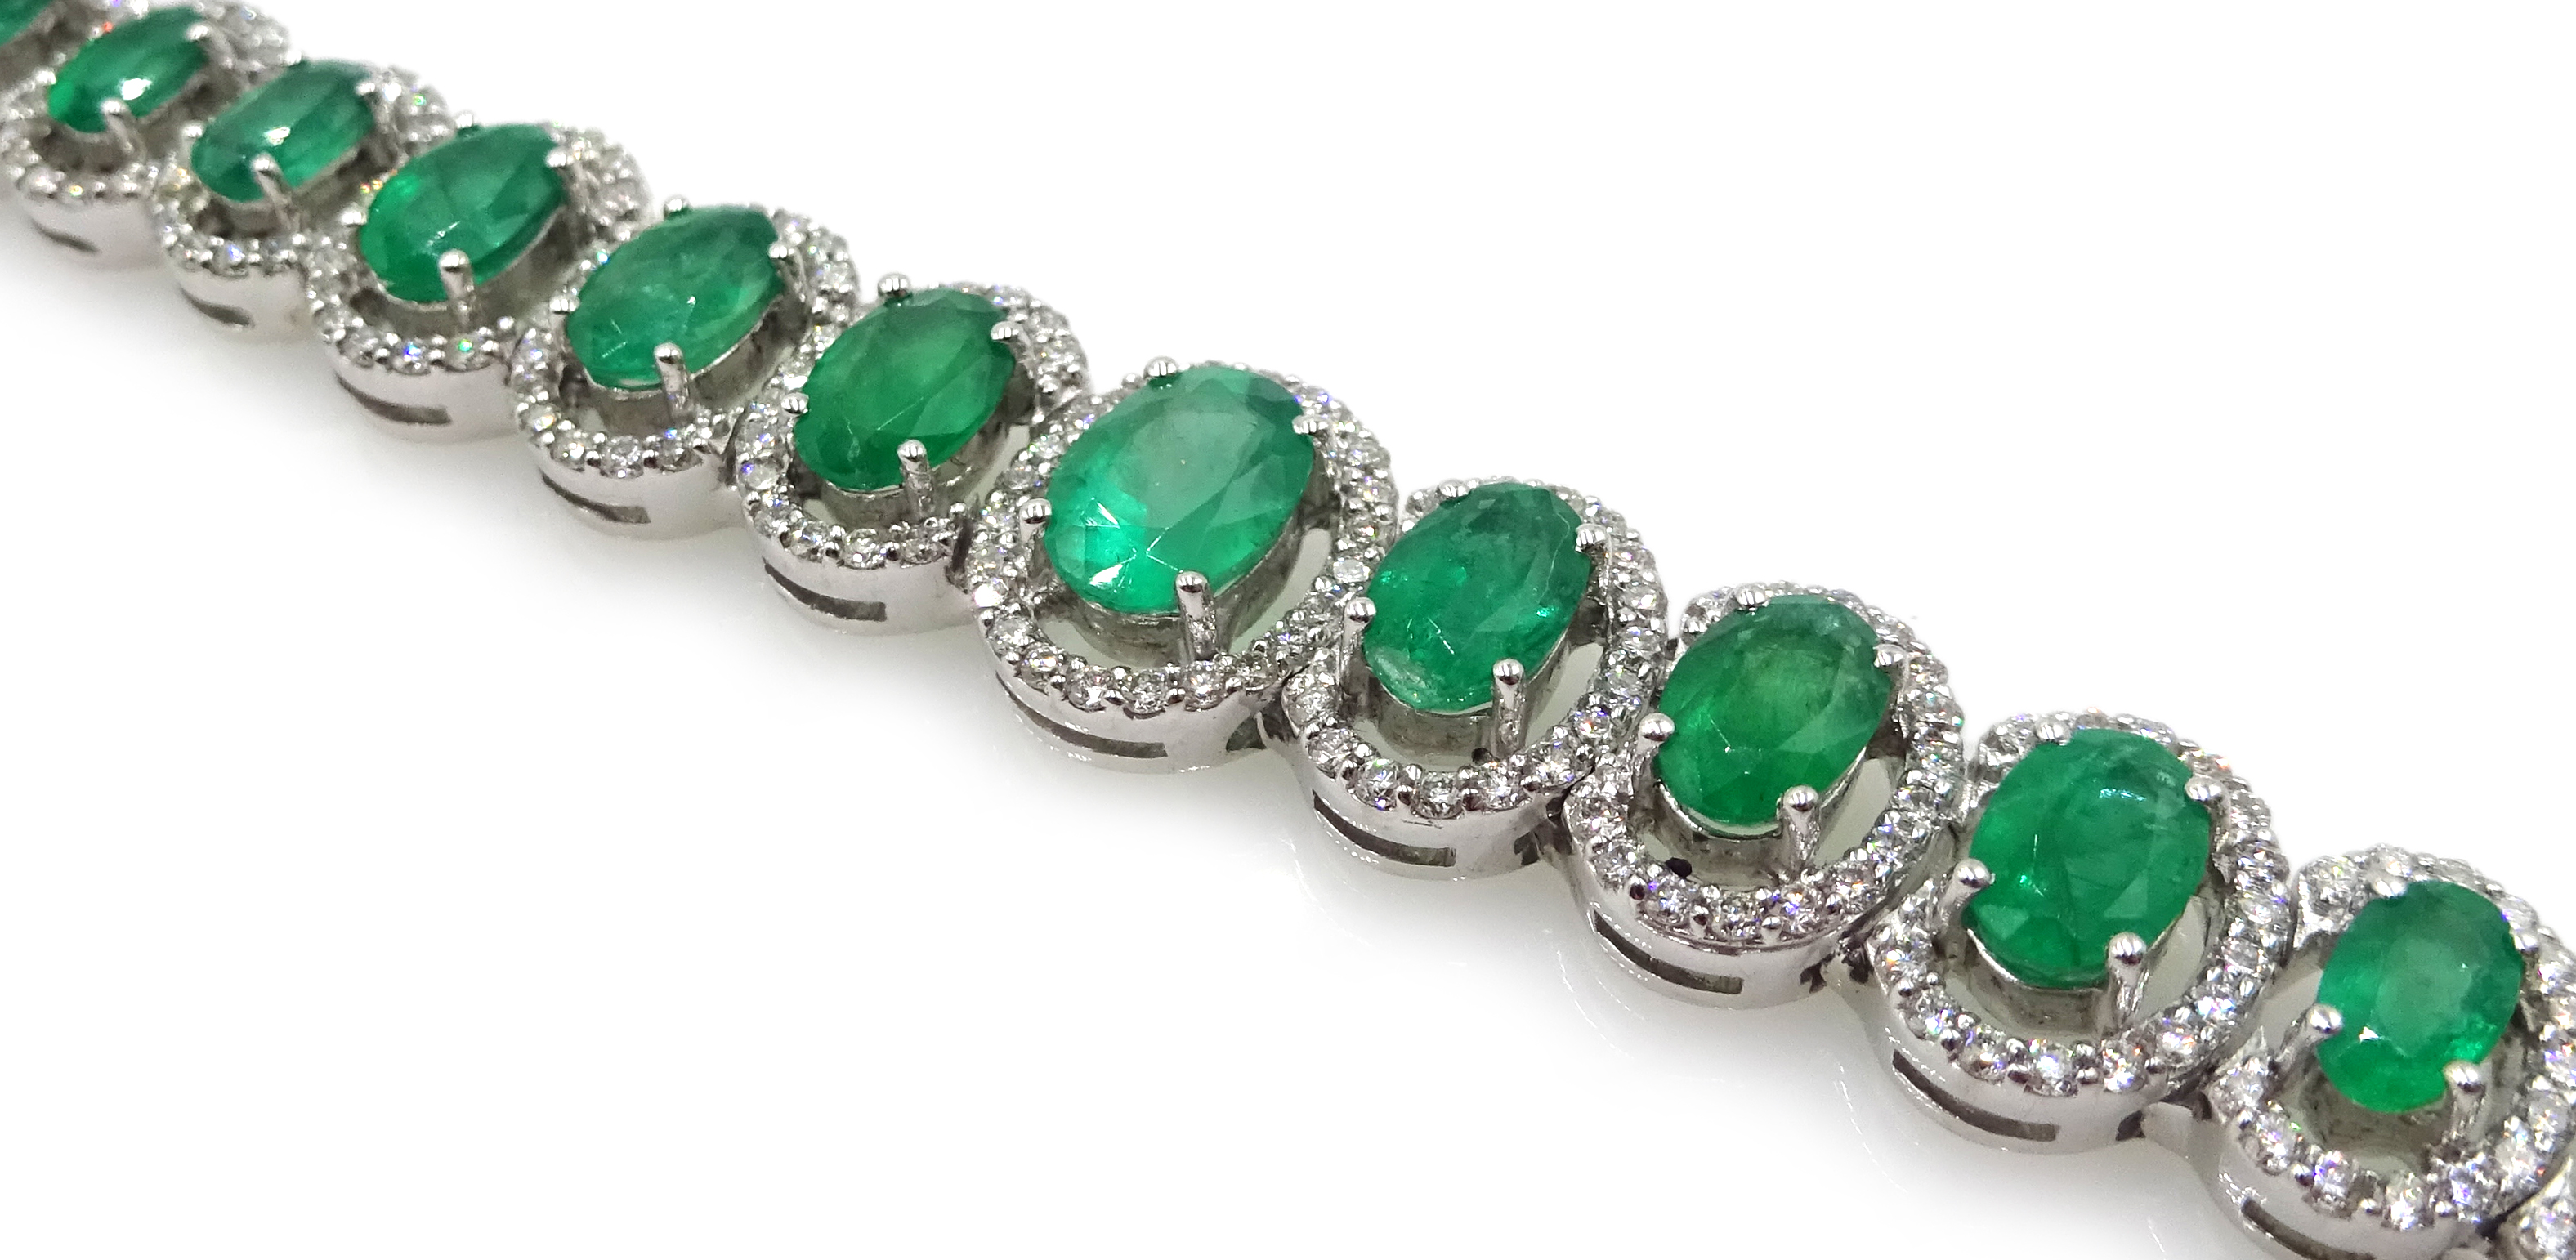 18ct gold graduating oval emerald bracelet, each emerald surrounded by brilliant cut diamonds, total - Image 4 of 5